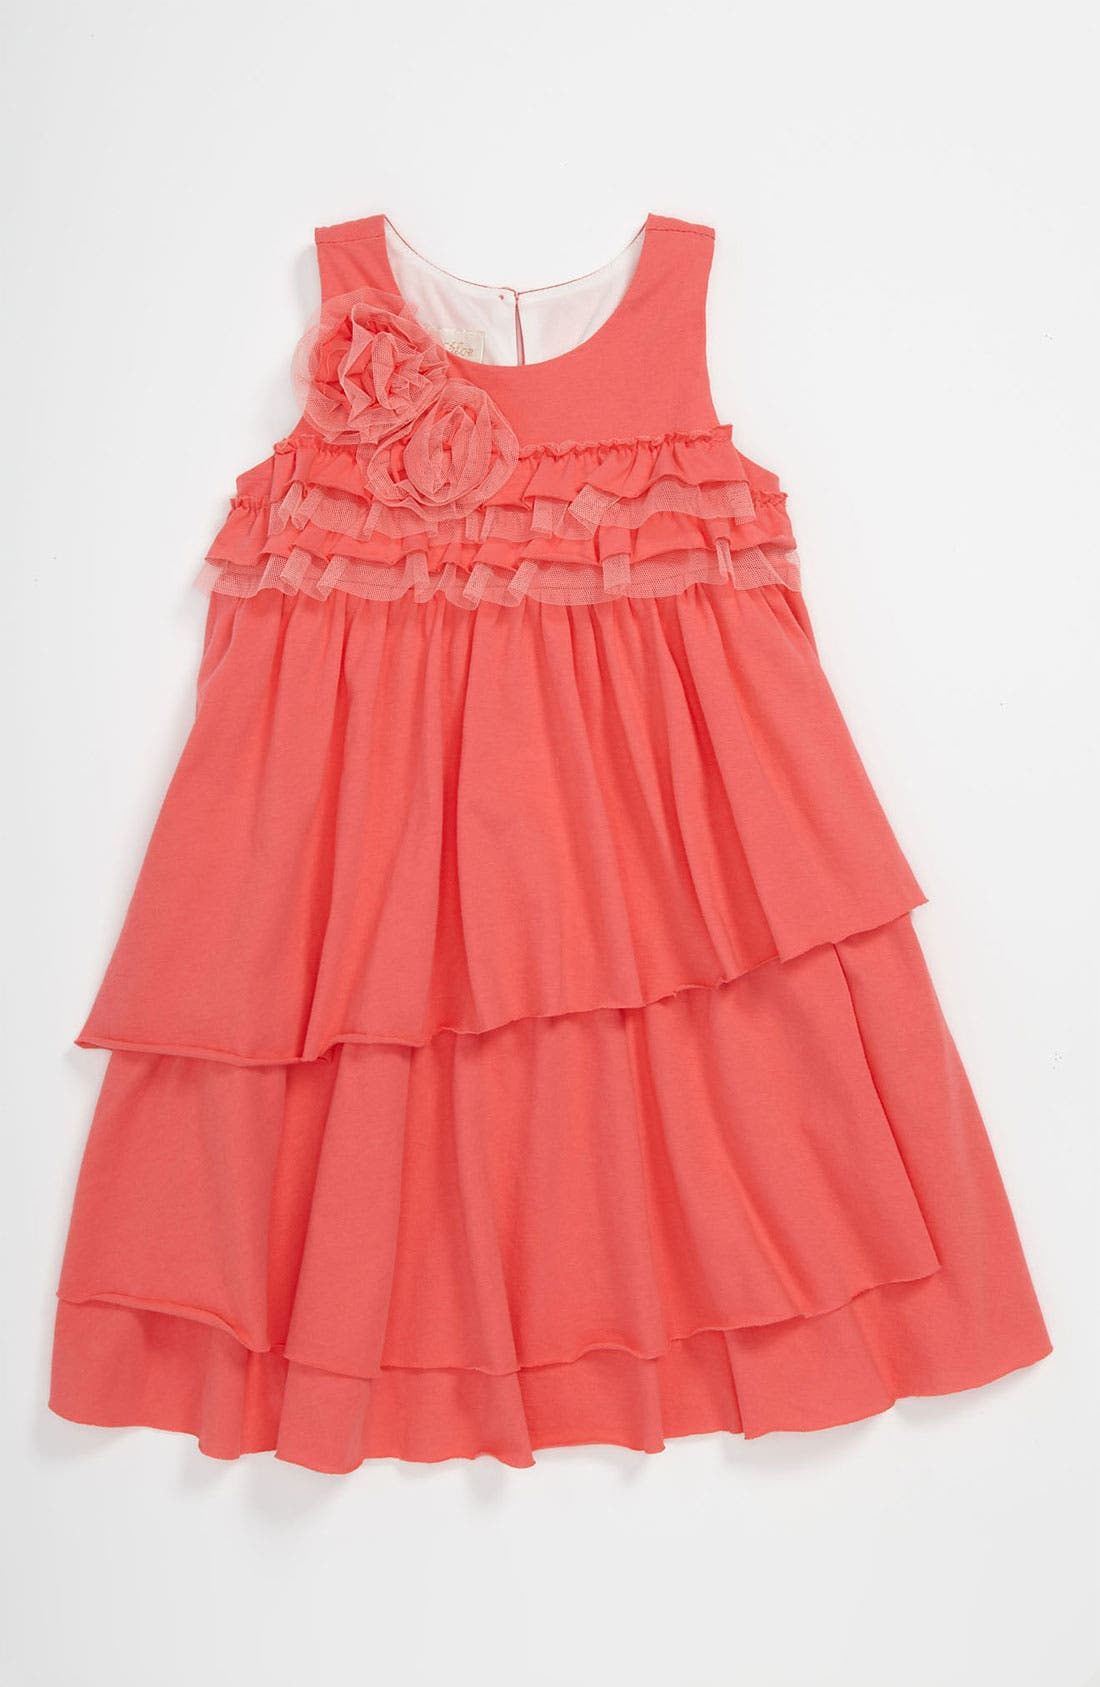 Alternate Image 1 Selected - Isobella & Chloe 'Jenny' Dress (Toddler)